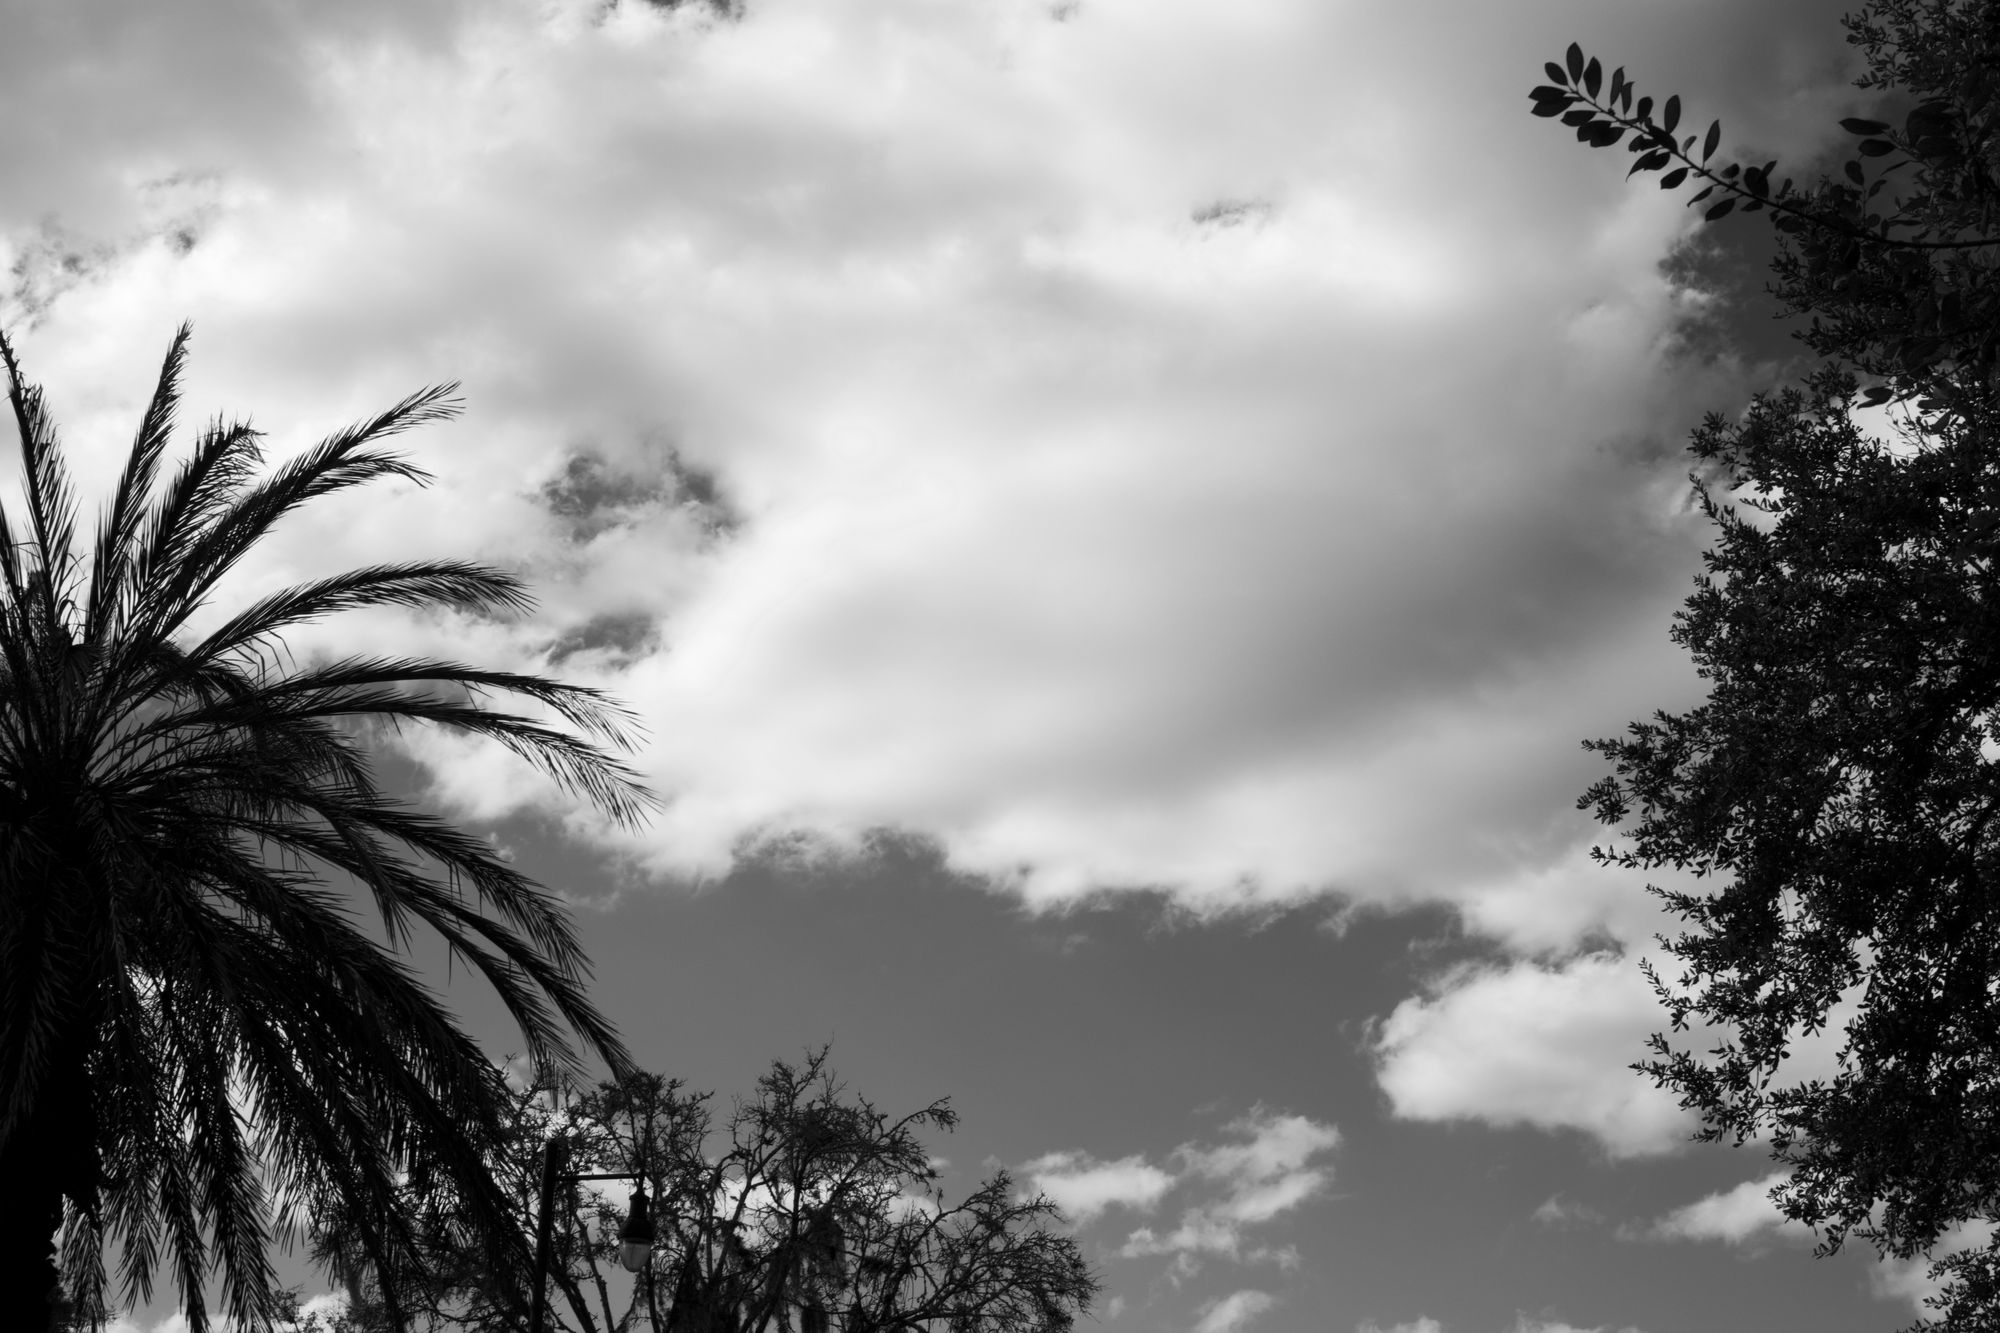 Various treetops in front of a cloudy sky